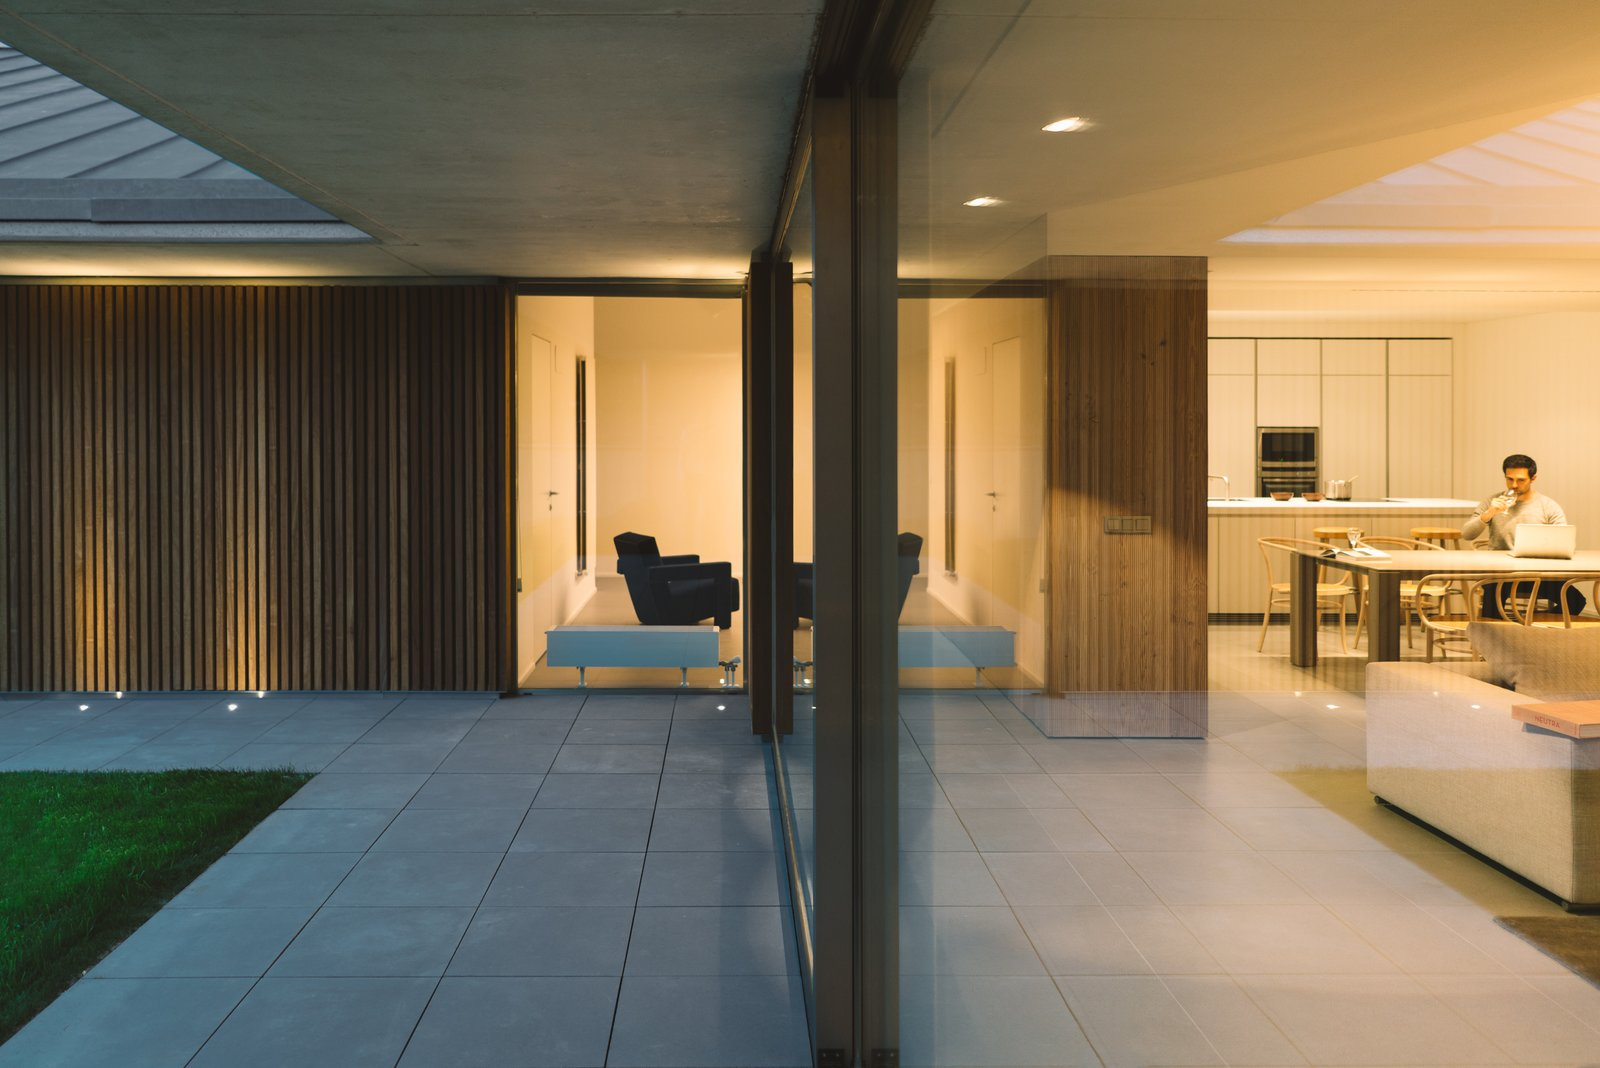 Sofa, Table, Ceiling Lighting, Chair, Outdoor, Front Yard, and Garden  The Öcher House by MLMR Architecture Consultancy